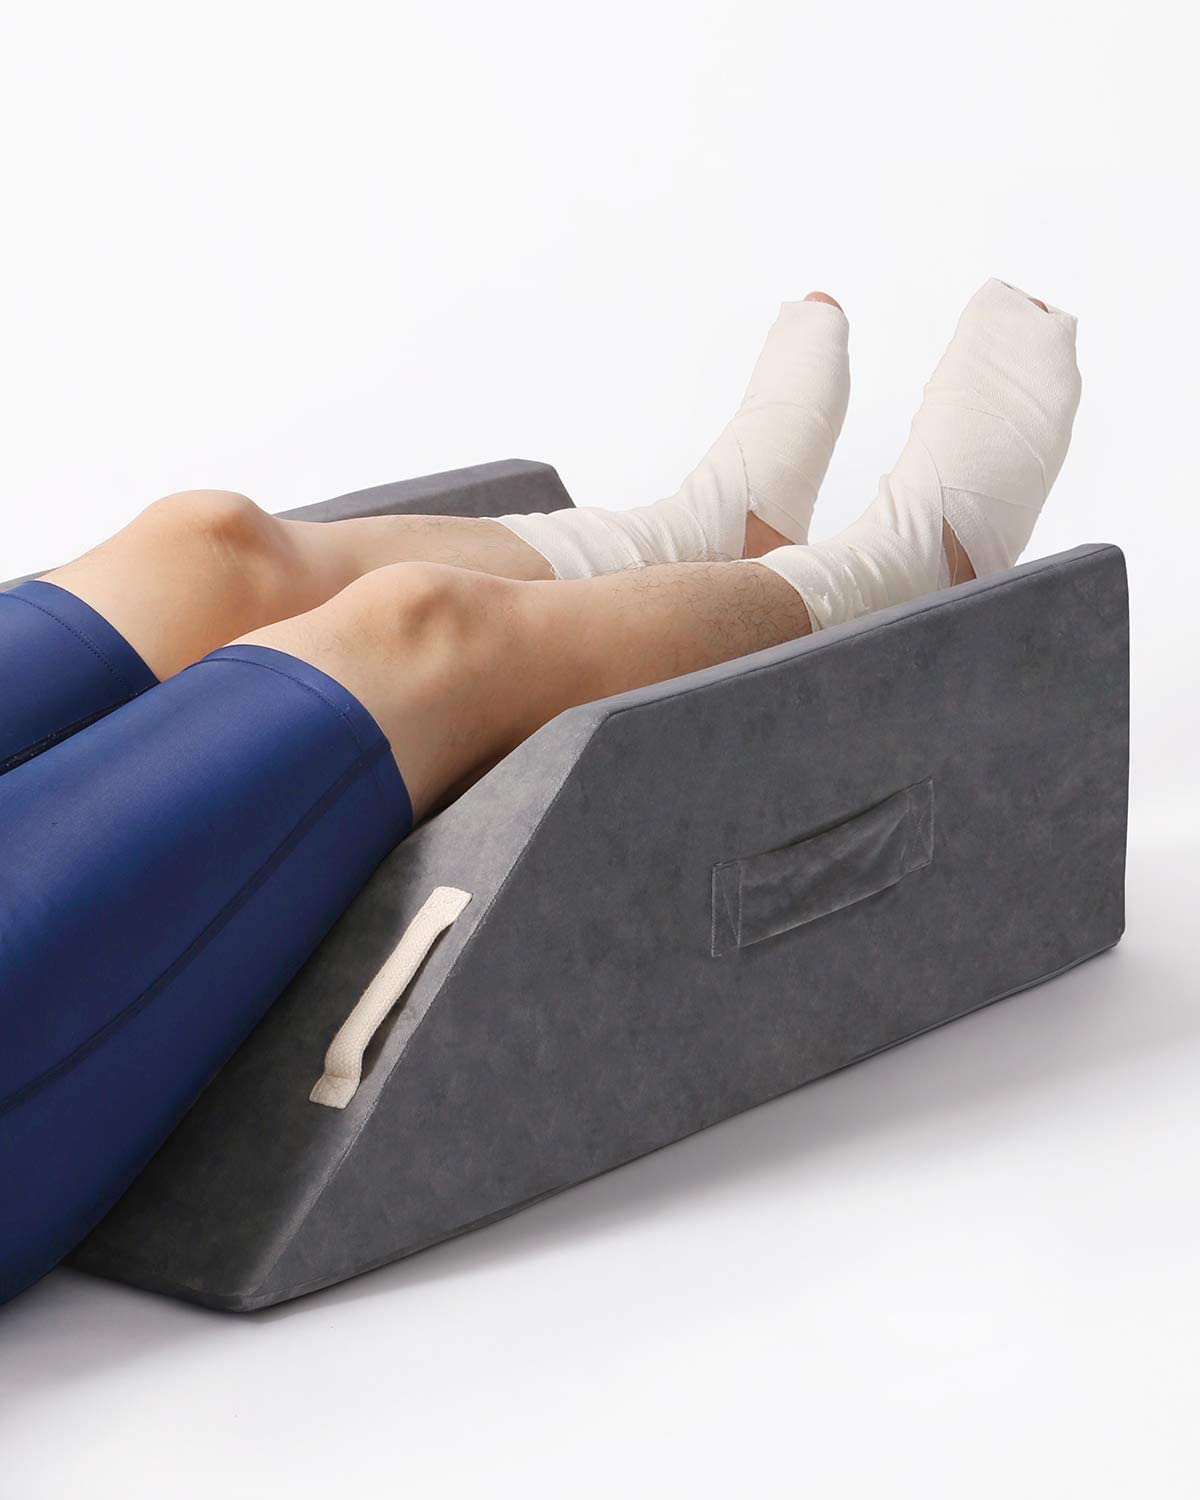 LightEase Post-Surgery Leg, Knee, Ankle Elevation Double Wedge Pillow, Memory Foam Leg Elevating Pillow for Injure, Sleeping, Foot Rest, Reduce Swelling